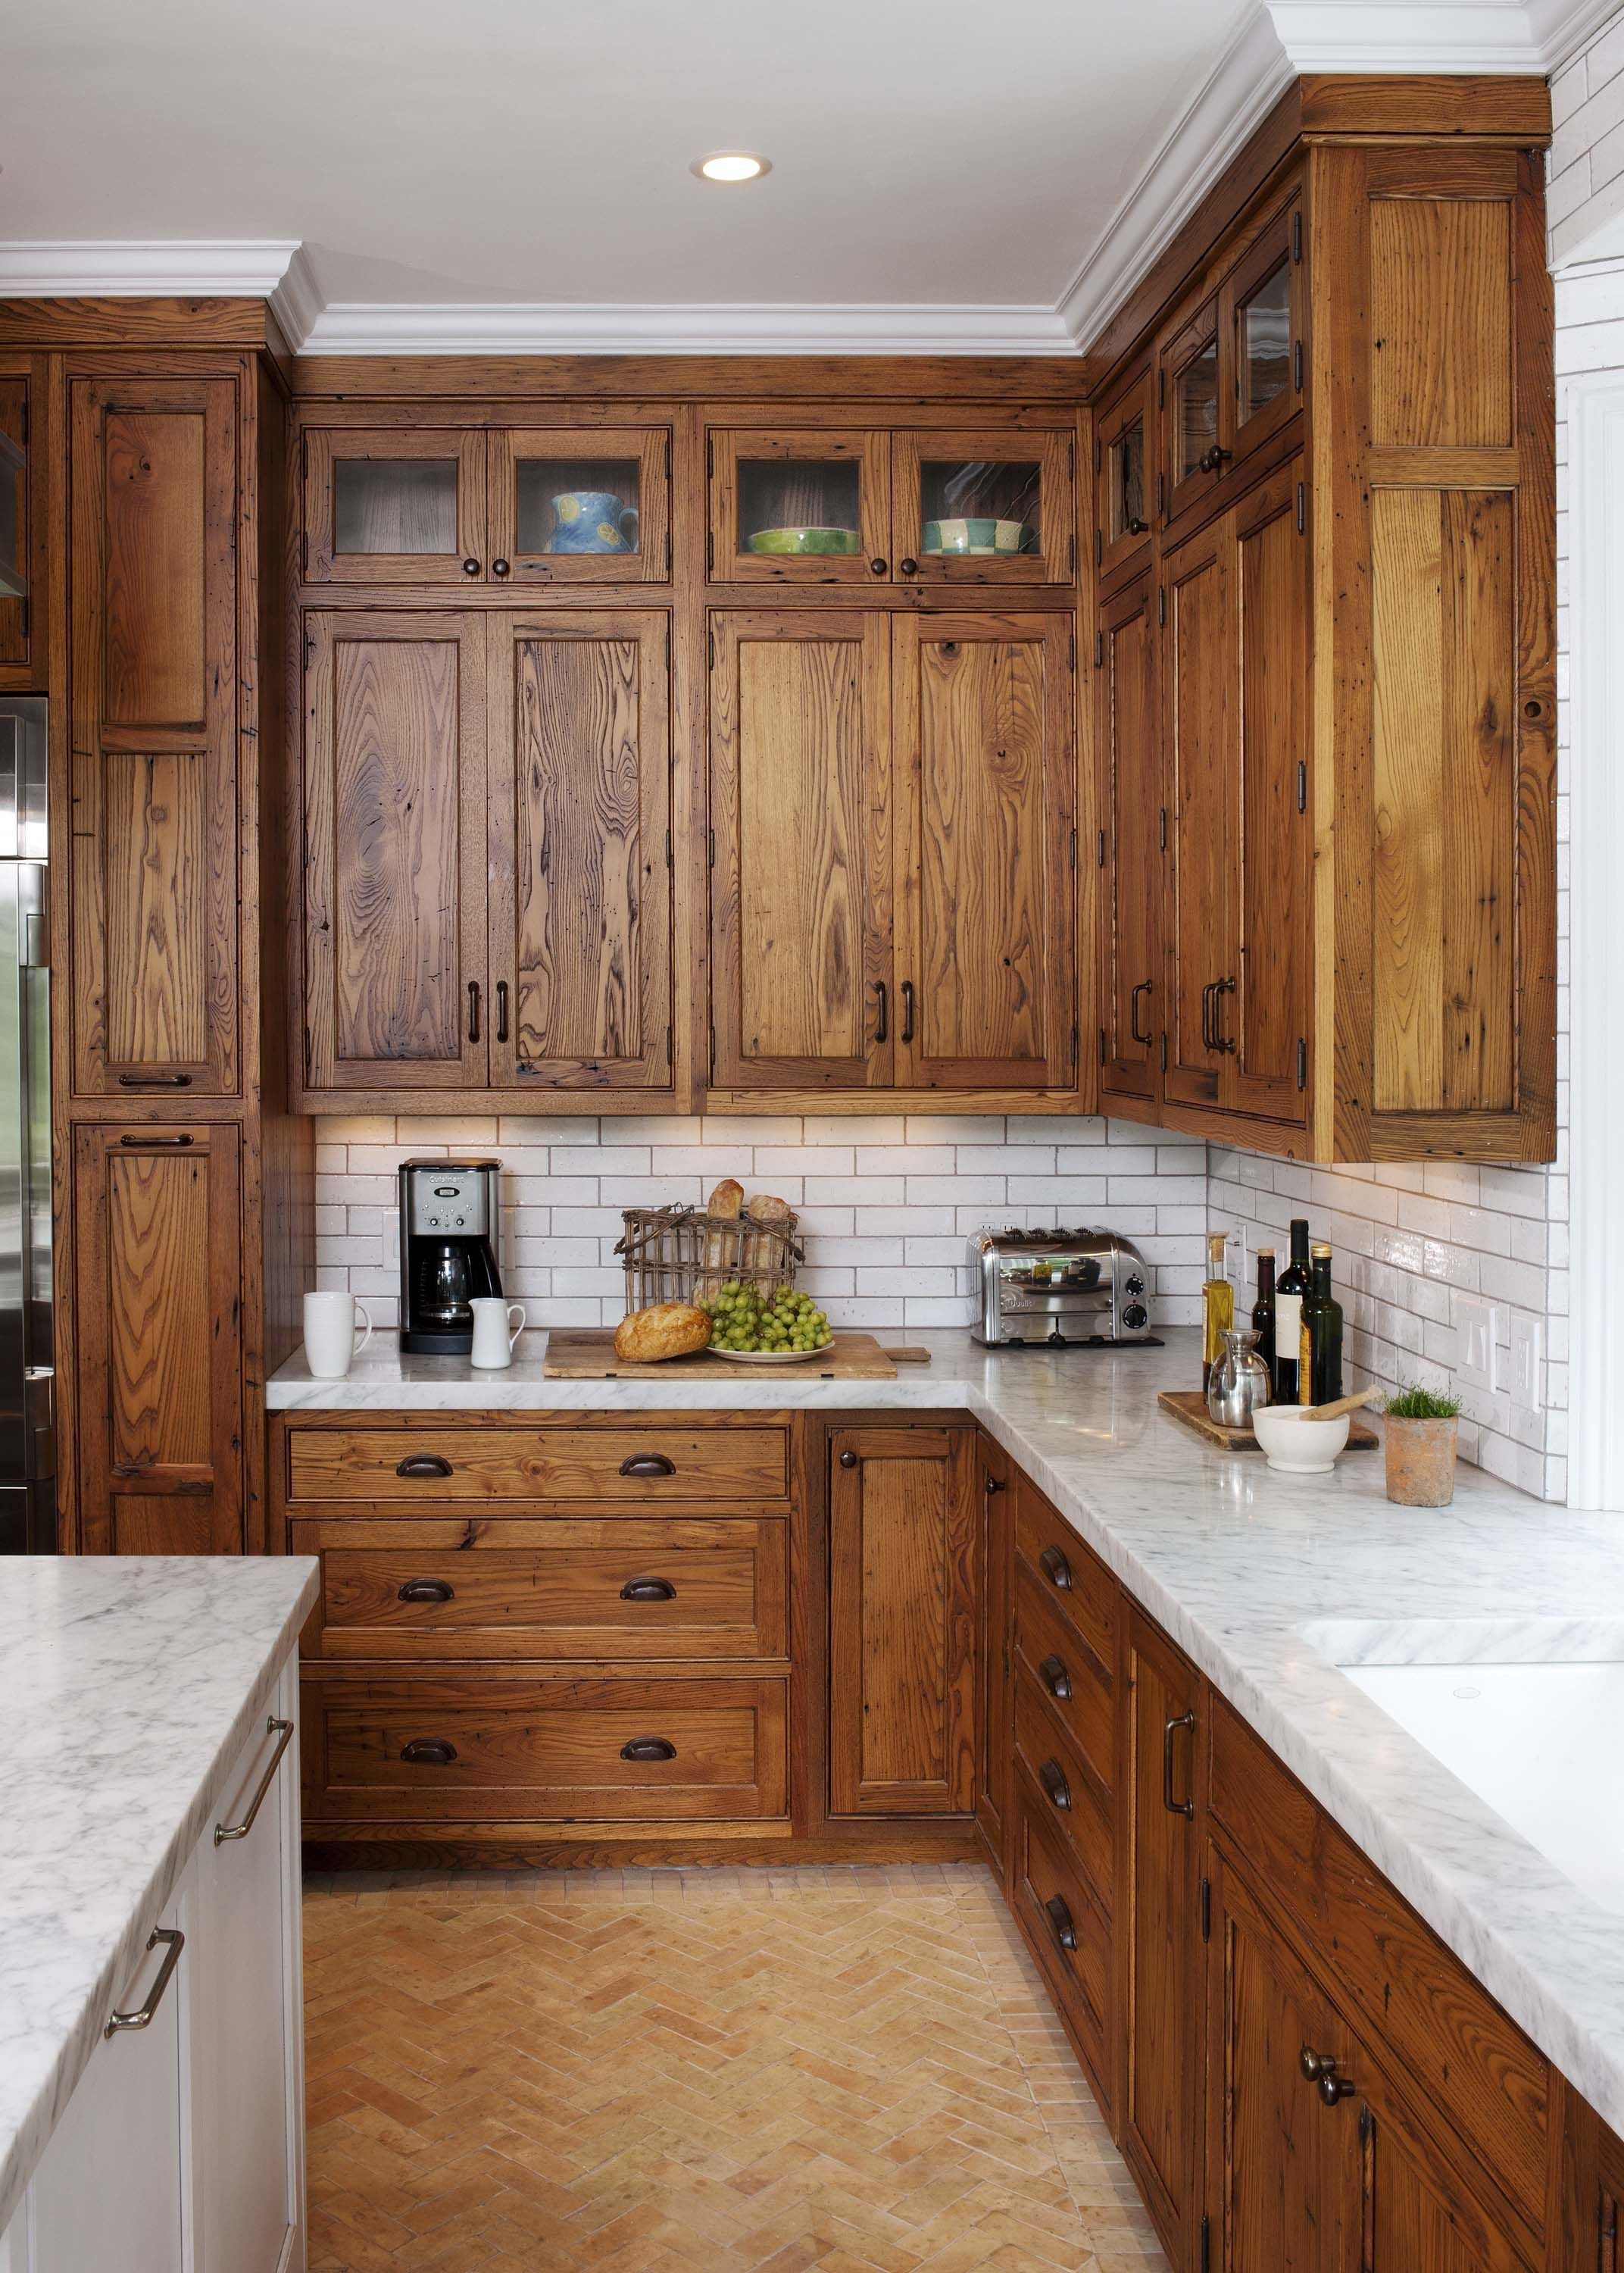 RECLAIMED CHESTNUT I will be doing this in my kitchen reno